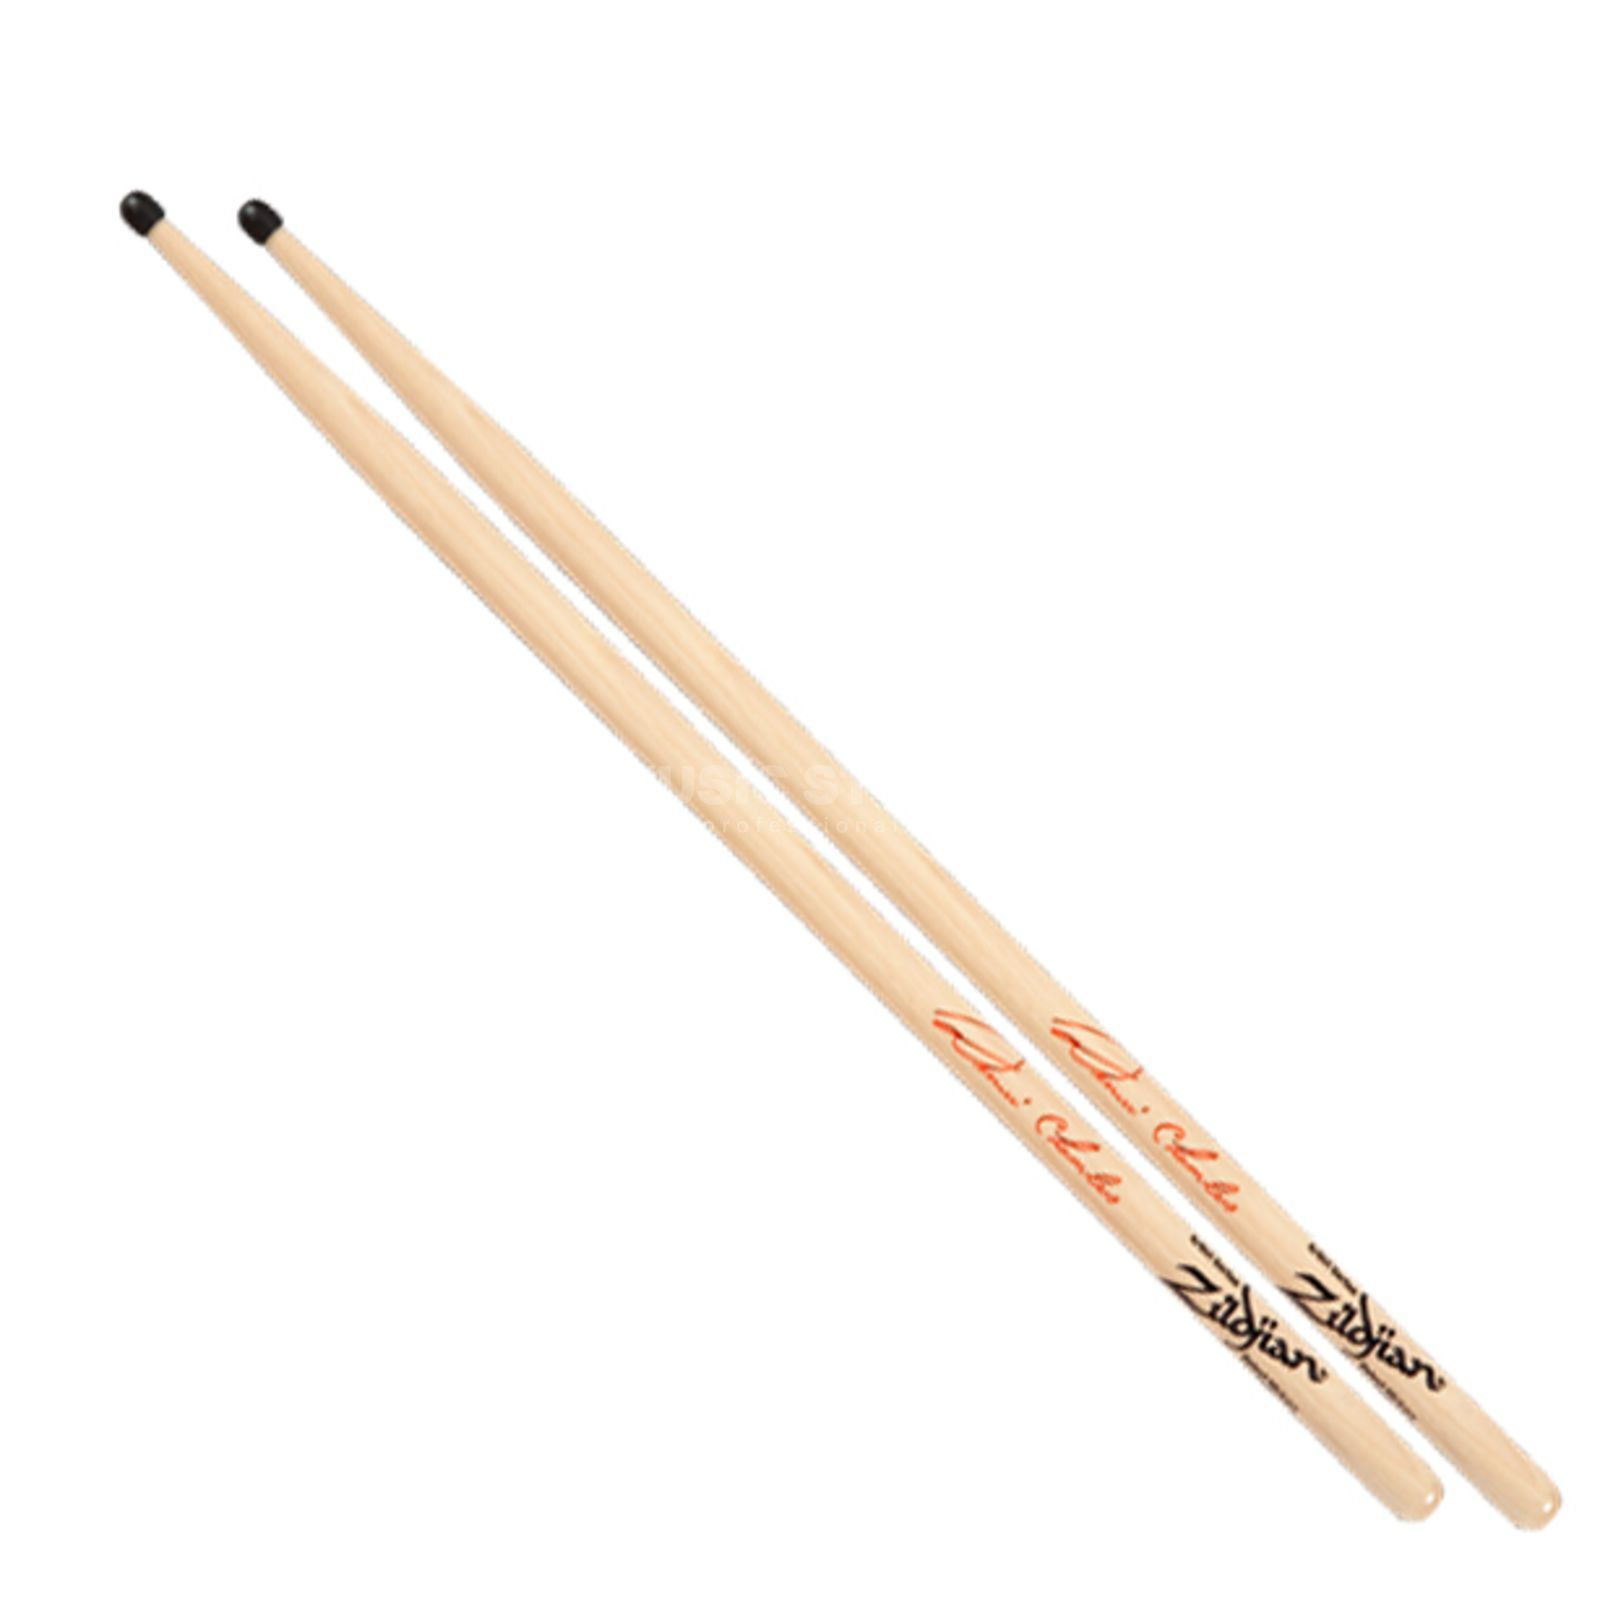 Zildjian Dennis Chambers Hickory Sticks Natural Finish, Nylon Tip Produktbild